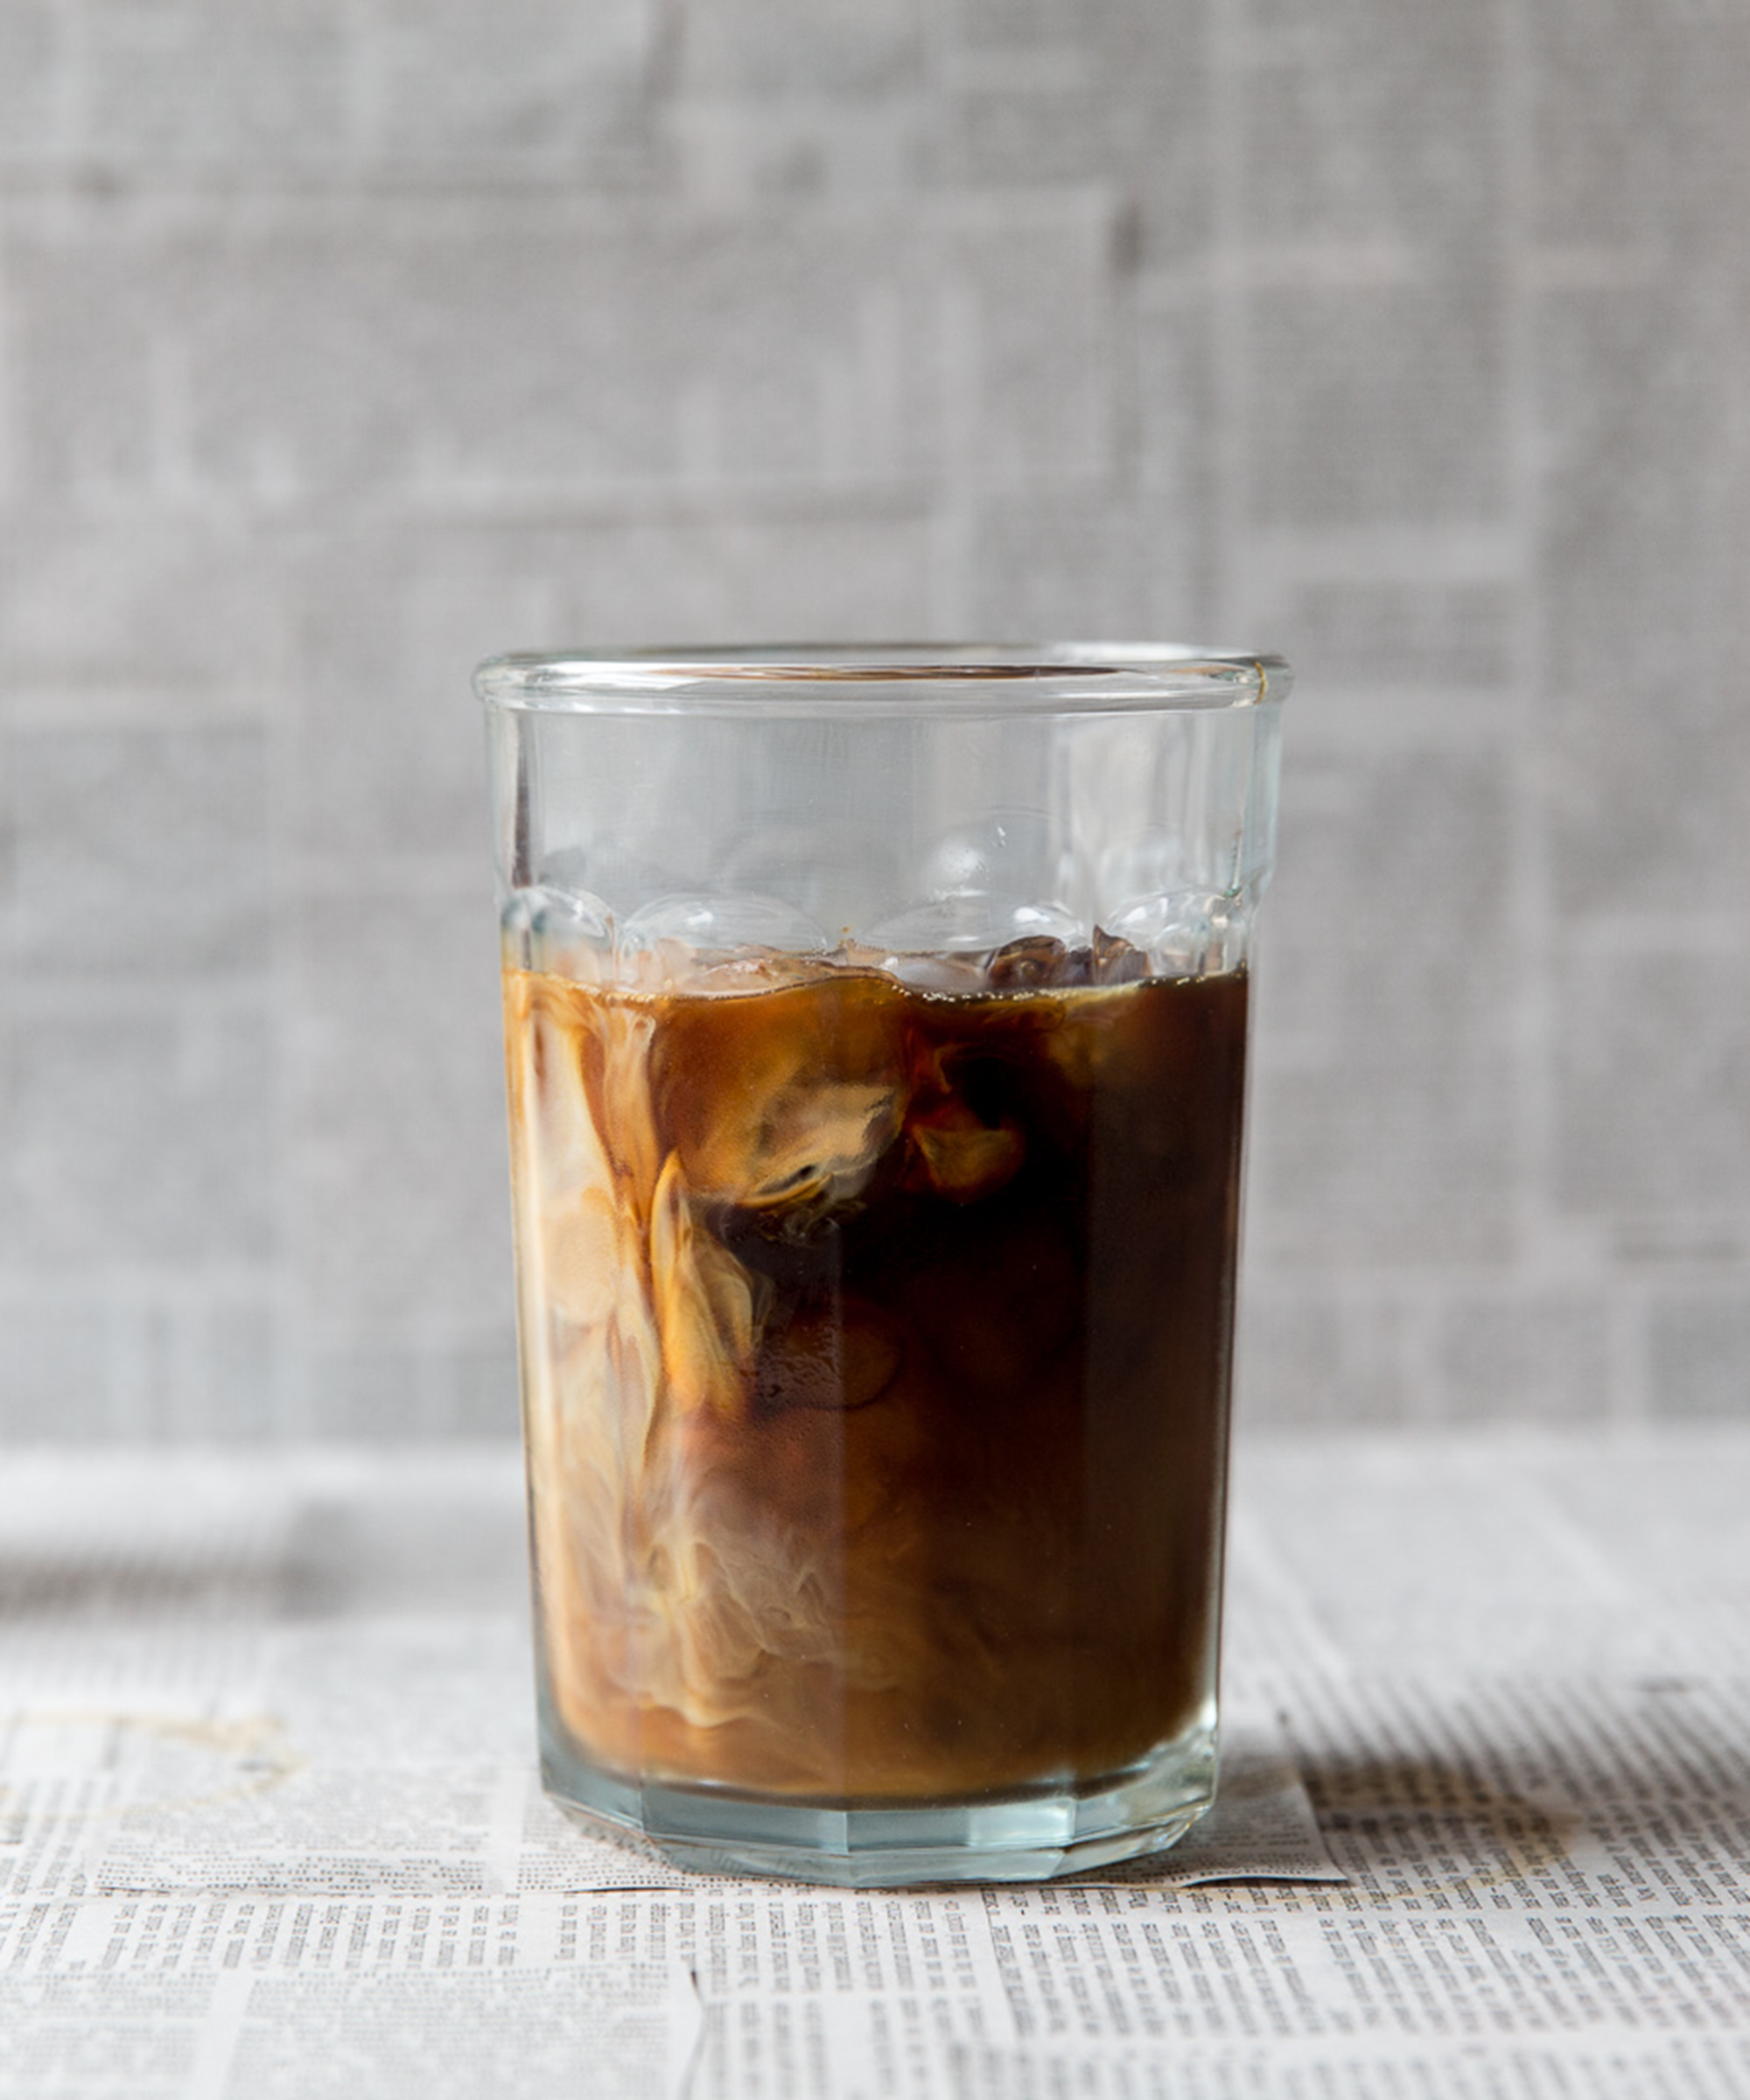 The New Iced Coffee Everyone Is Talking About The New Iced Coffee Everyone Is Talking About new pics